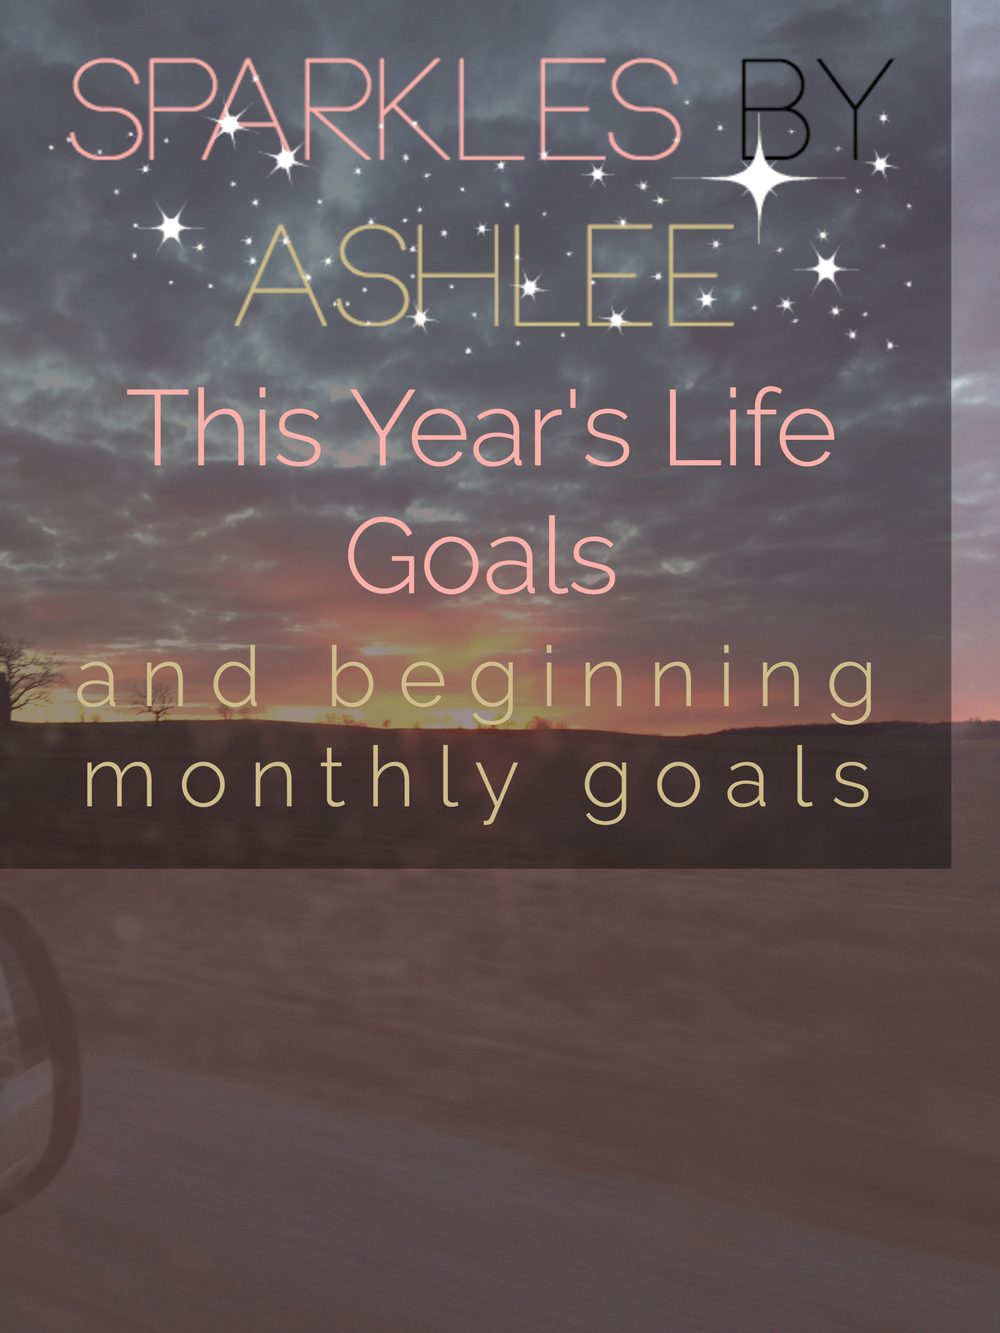 Life-Goals-Monthly-Goals-Sparkles-by-Ashlee.png